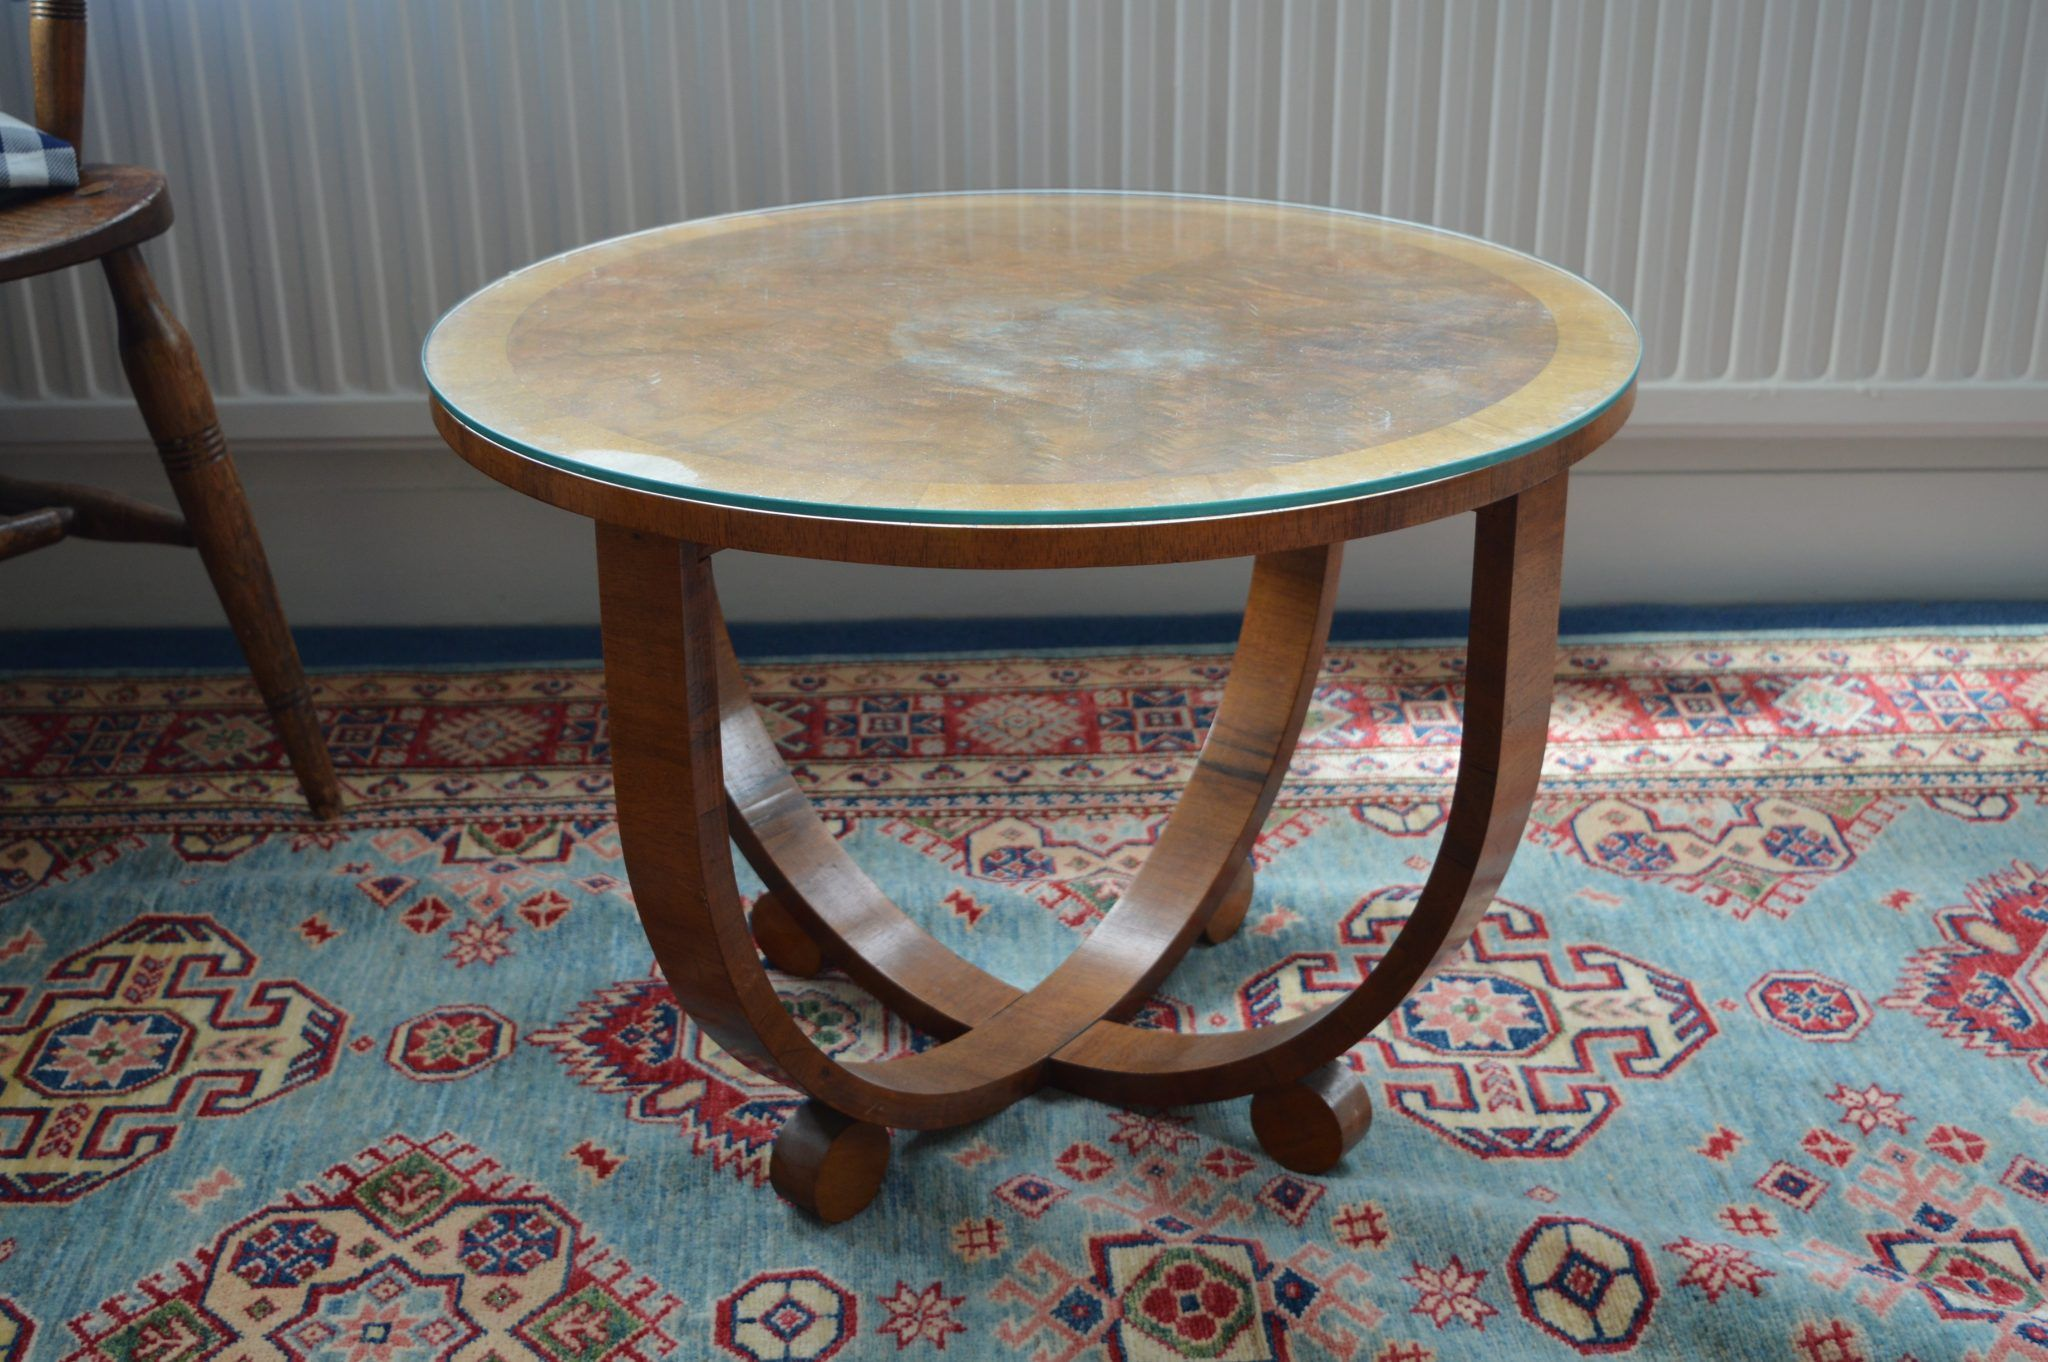 1930s Art Deco Style Coffee Table with Glass Top Layer